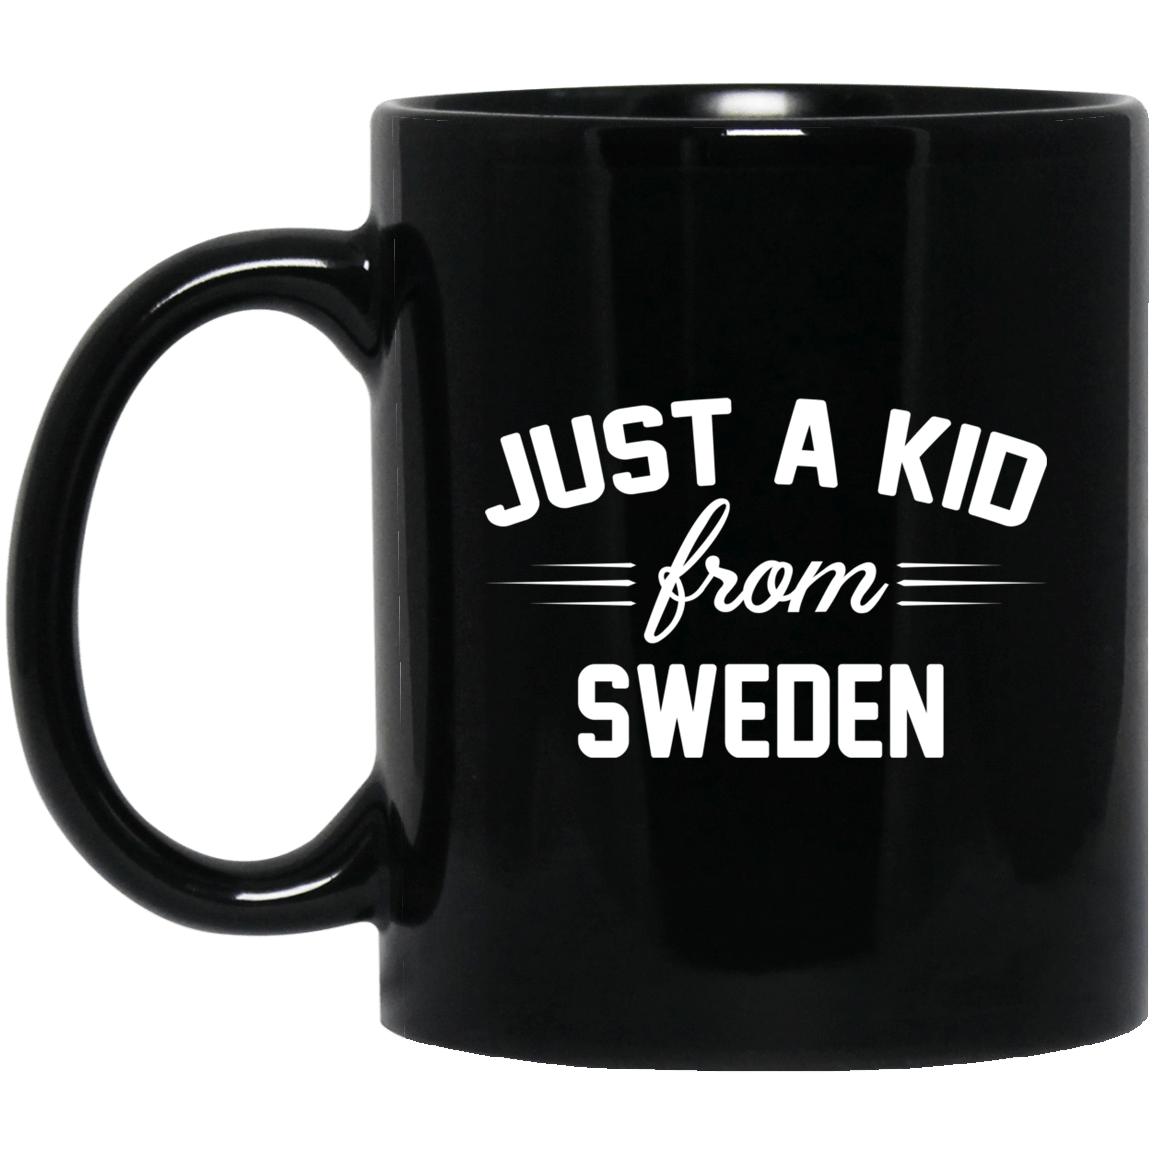 Just A Kid Store | Sweden Mug 1065-10181-72111103-49307 - Tee Ript